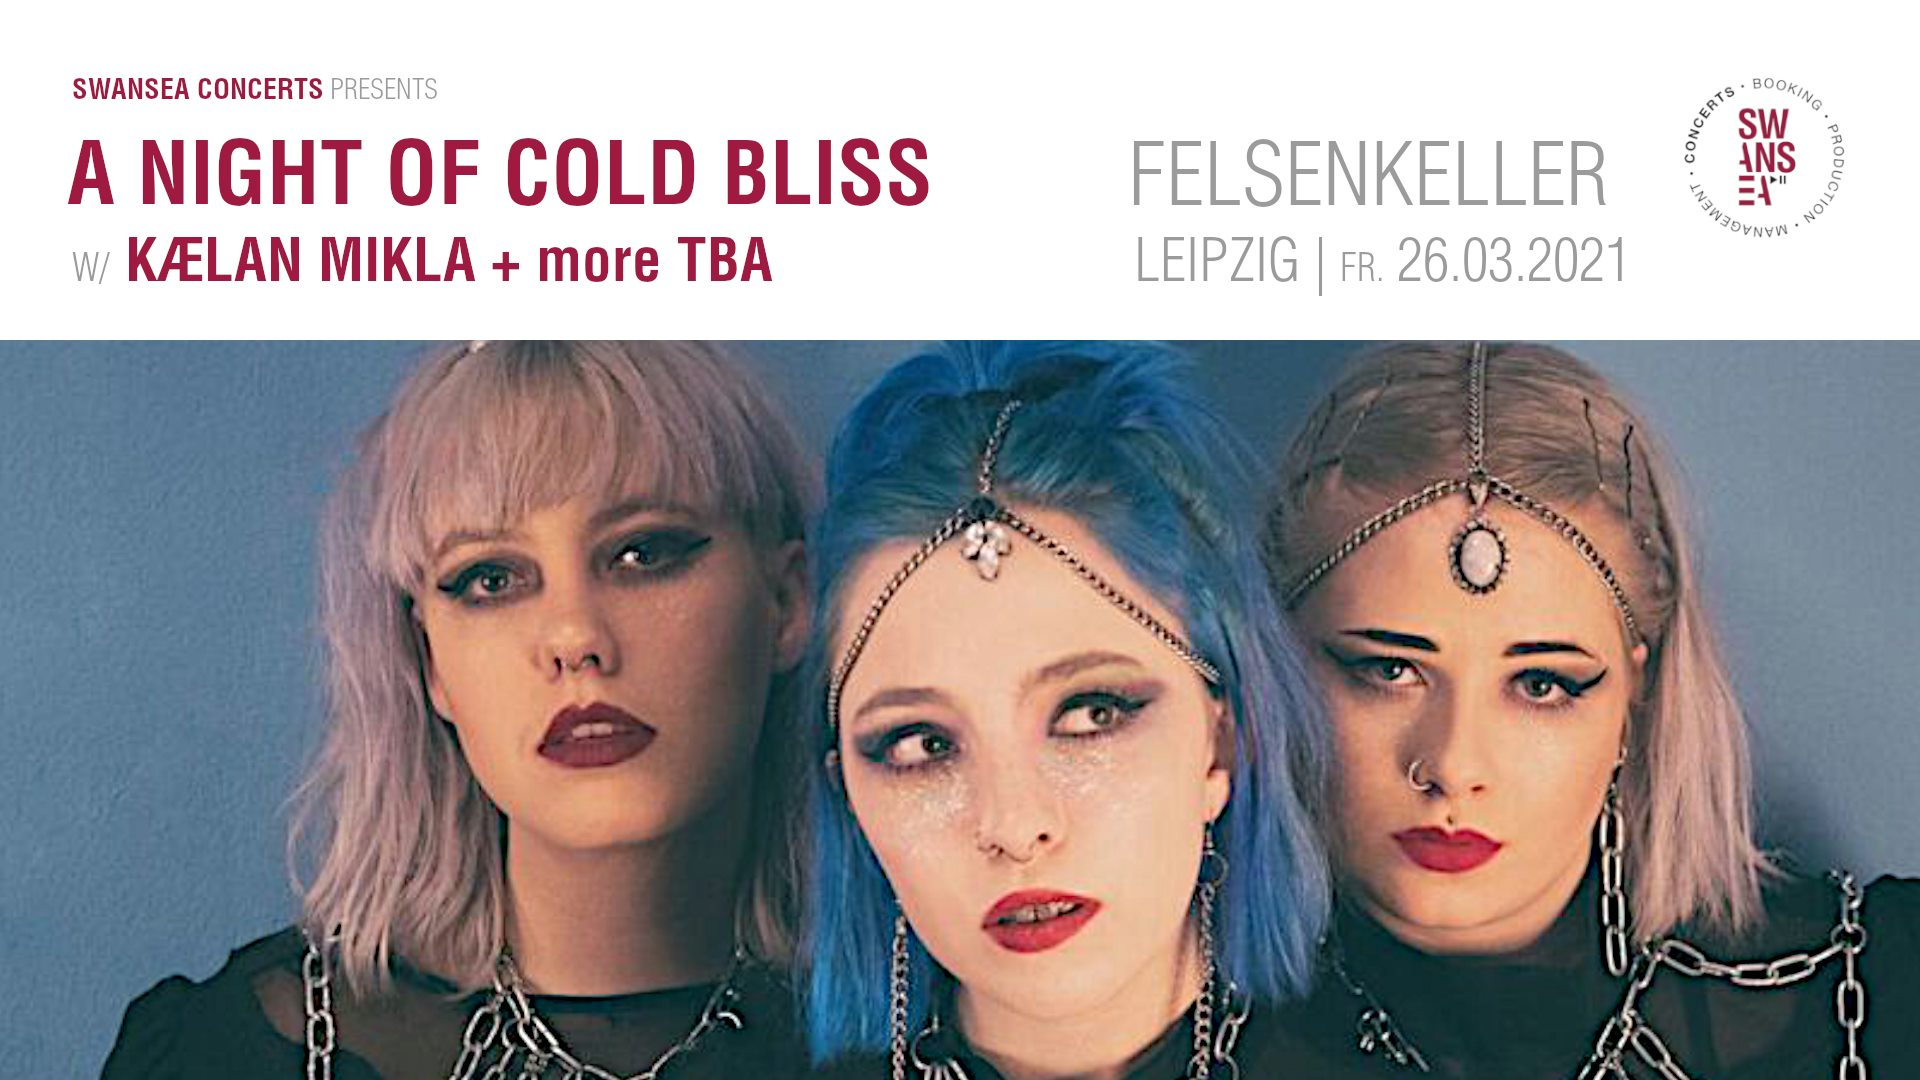 A Night Of Cold Bliss w/ Kælan Mikla